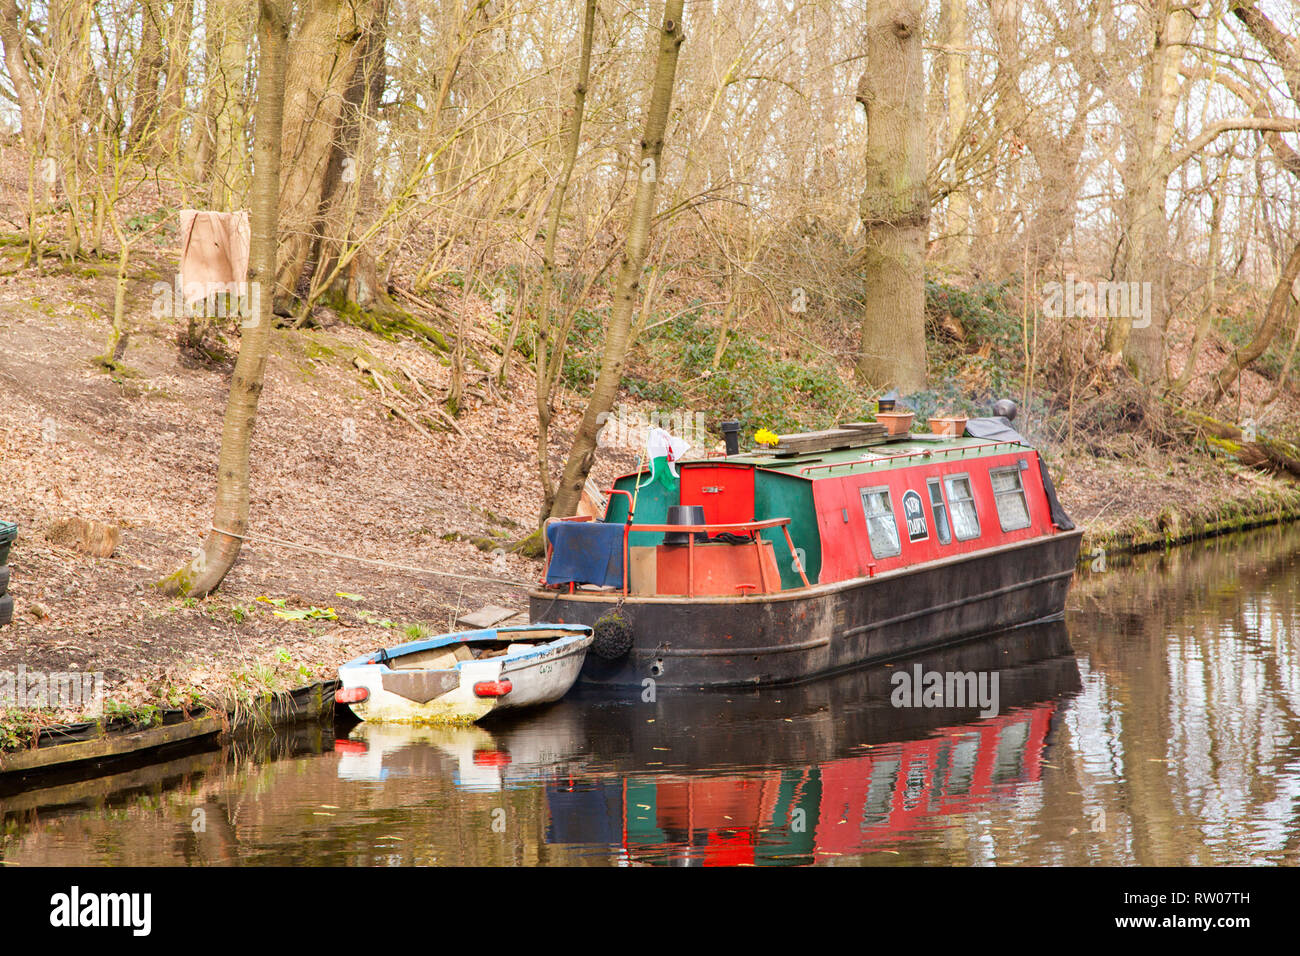 Narrowboat houseboat  moored on the Llangollen canal inland waterway near Chirk in North Wales UK - Stock Image